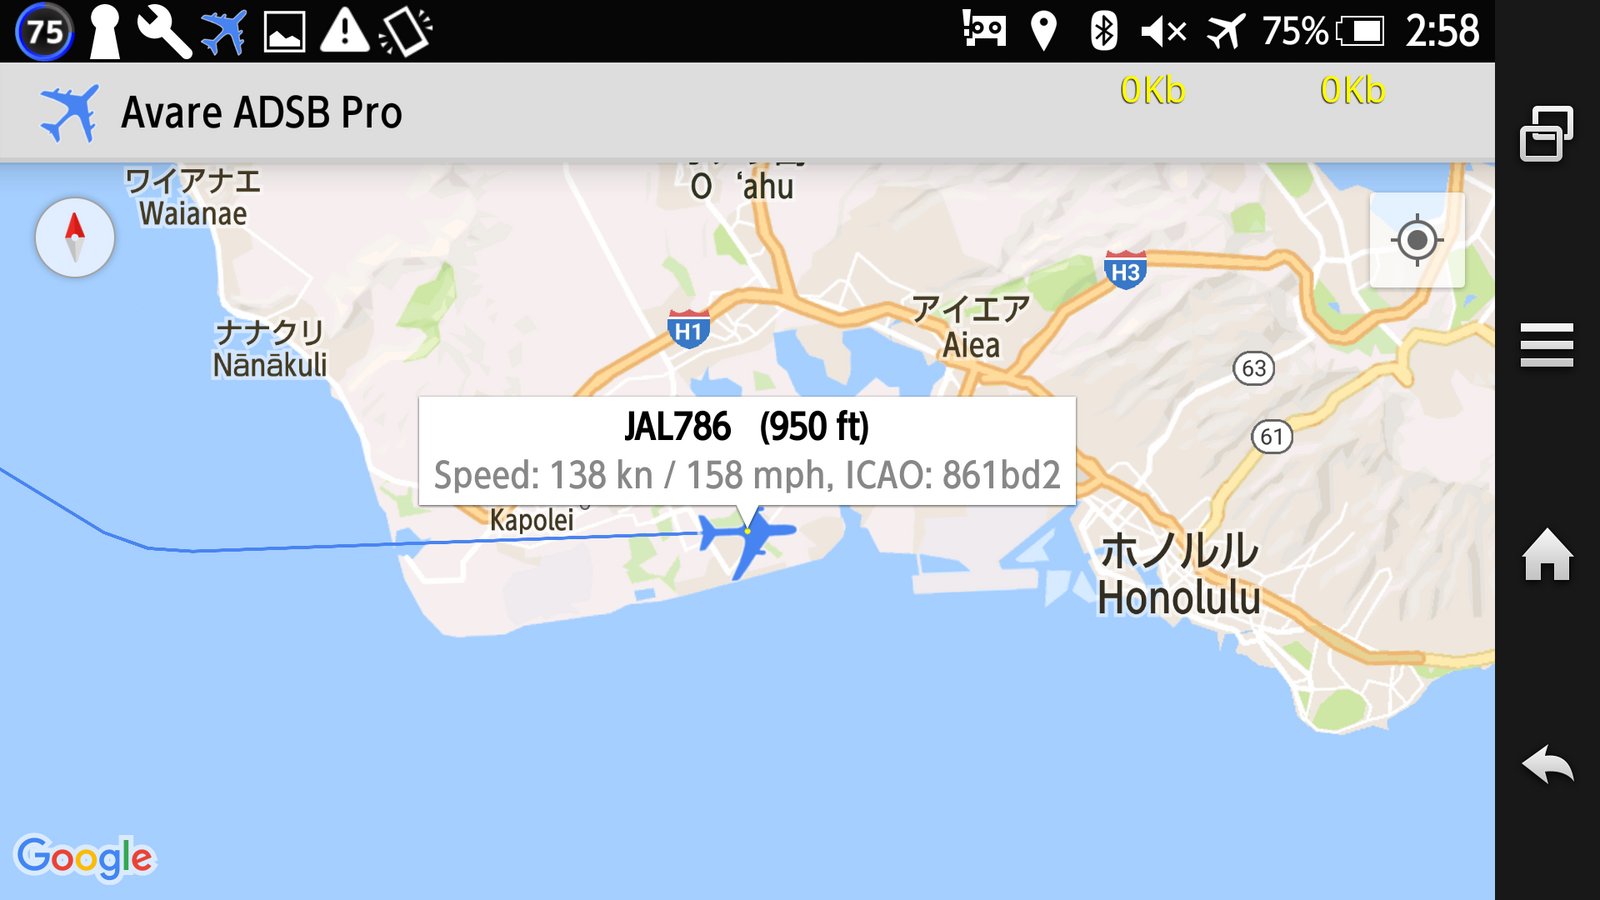 Jal786950ft